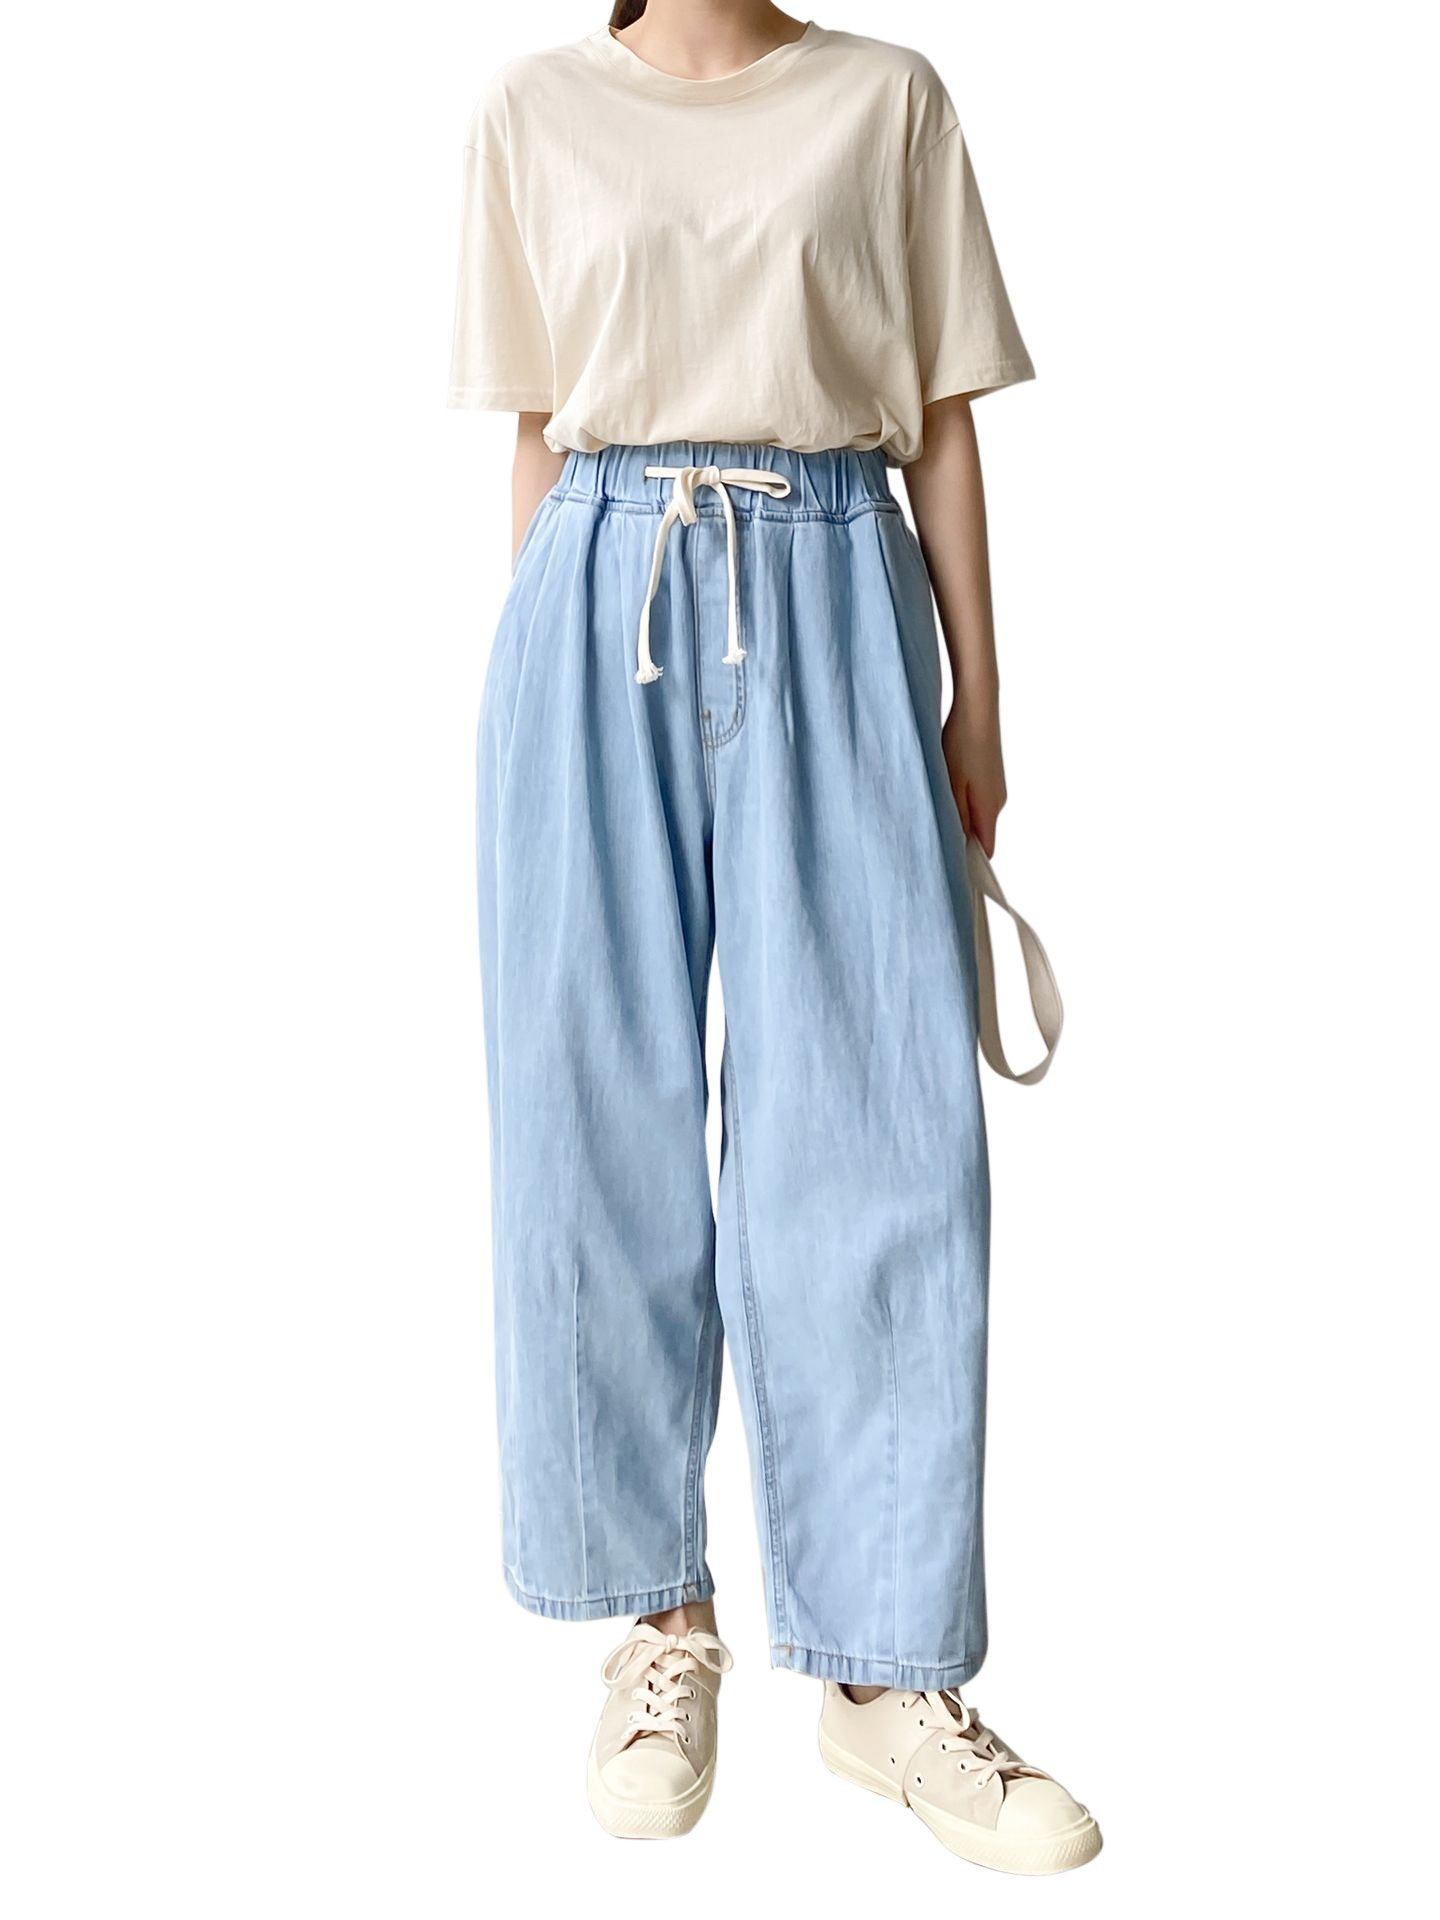 5062 Jean Baggy Bouffanteac Jean Baggy Womens Clothing